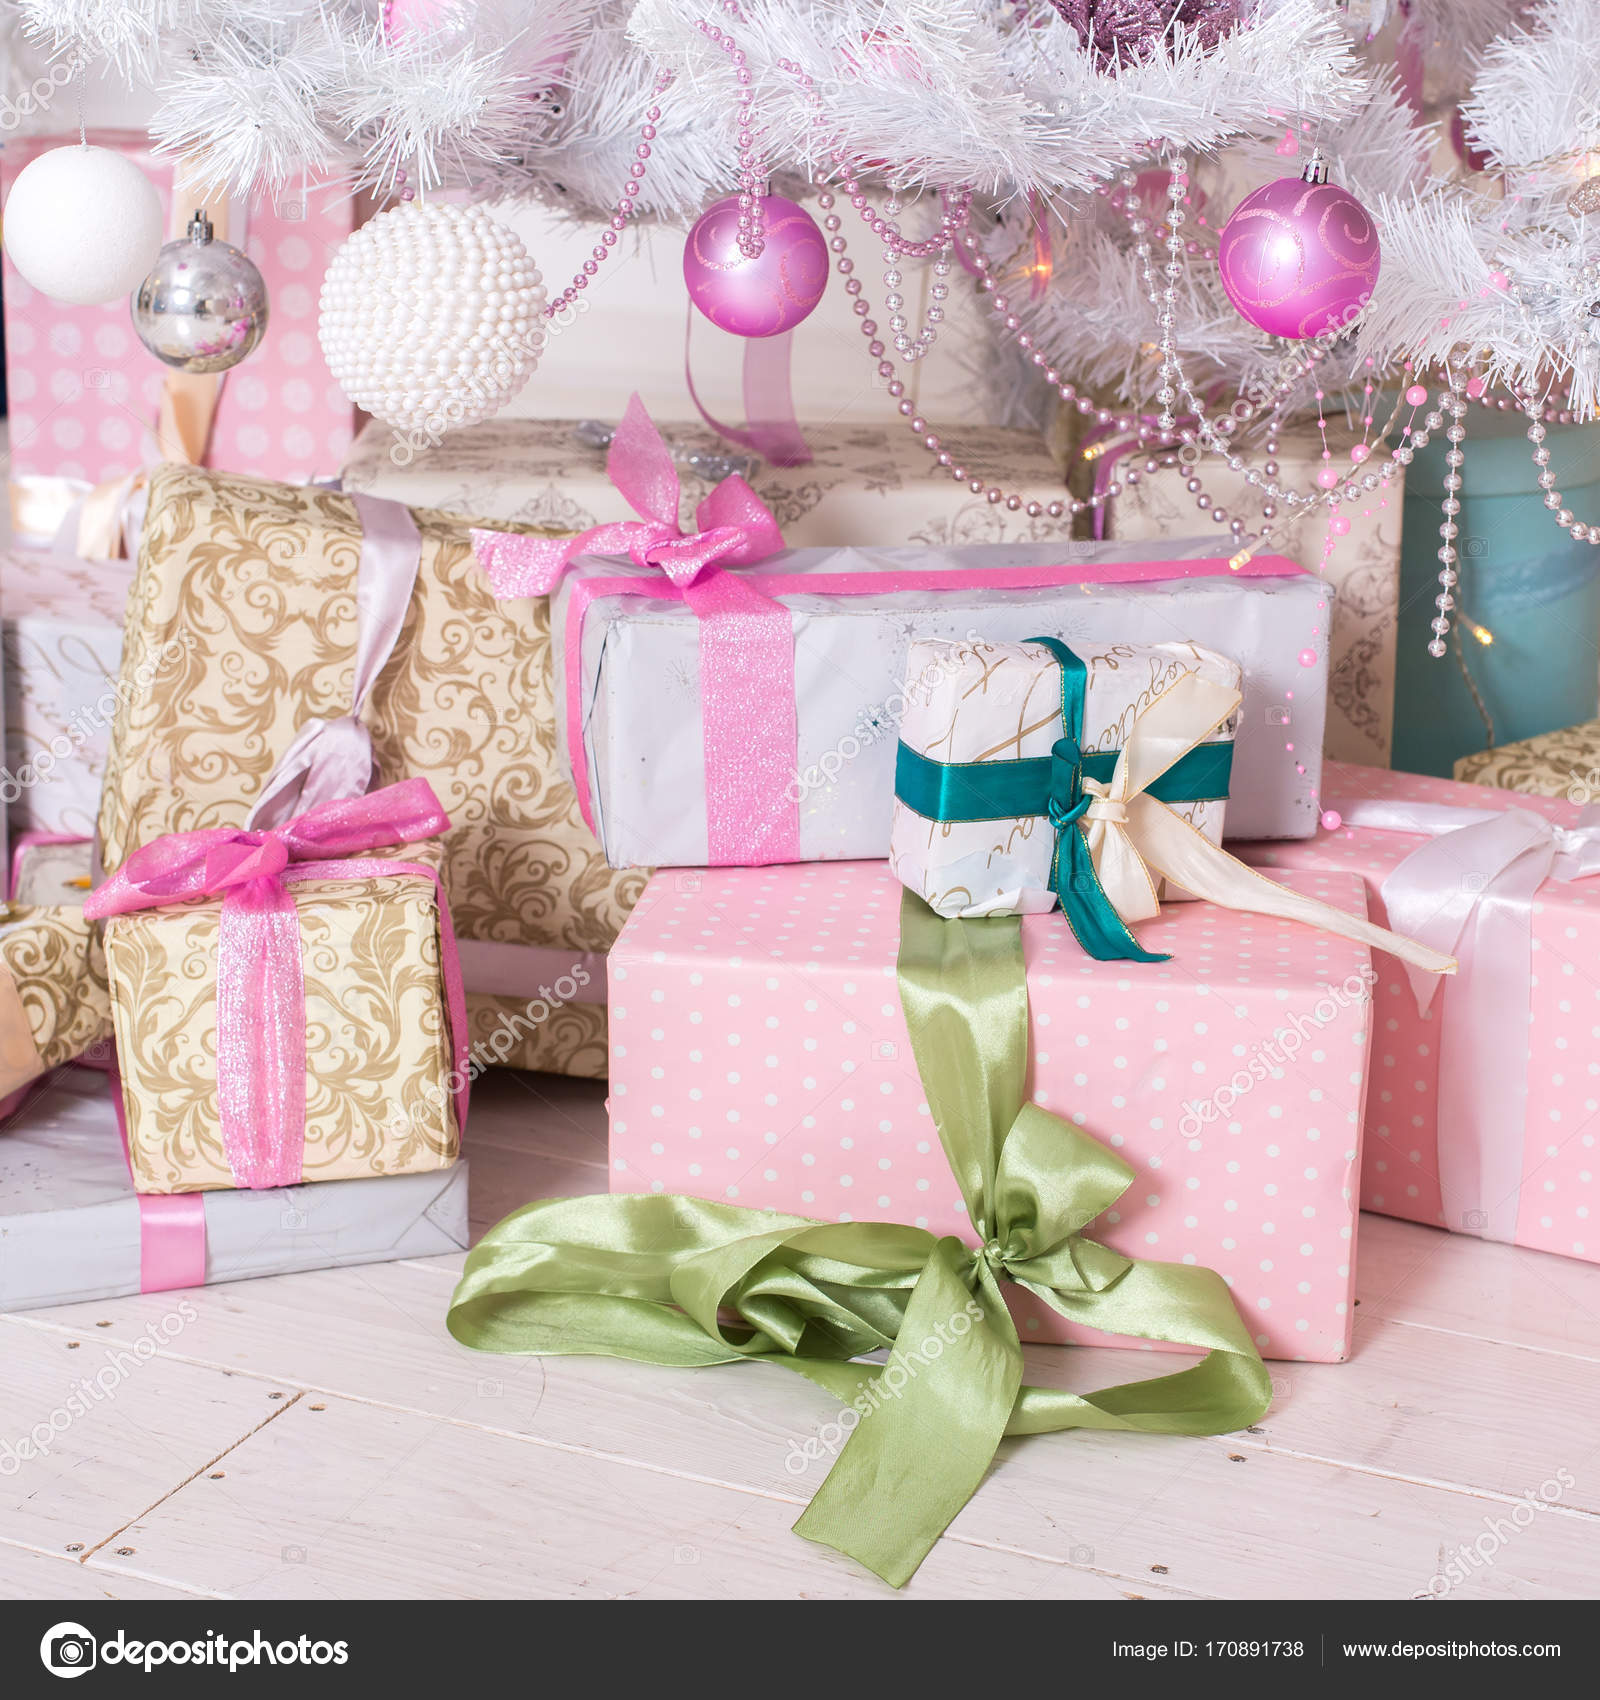 Giftboxes, pink and white christmas decorations balls hanging on ...